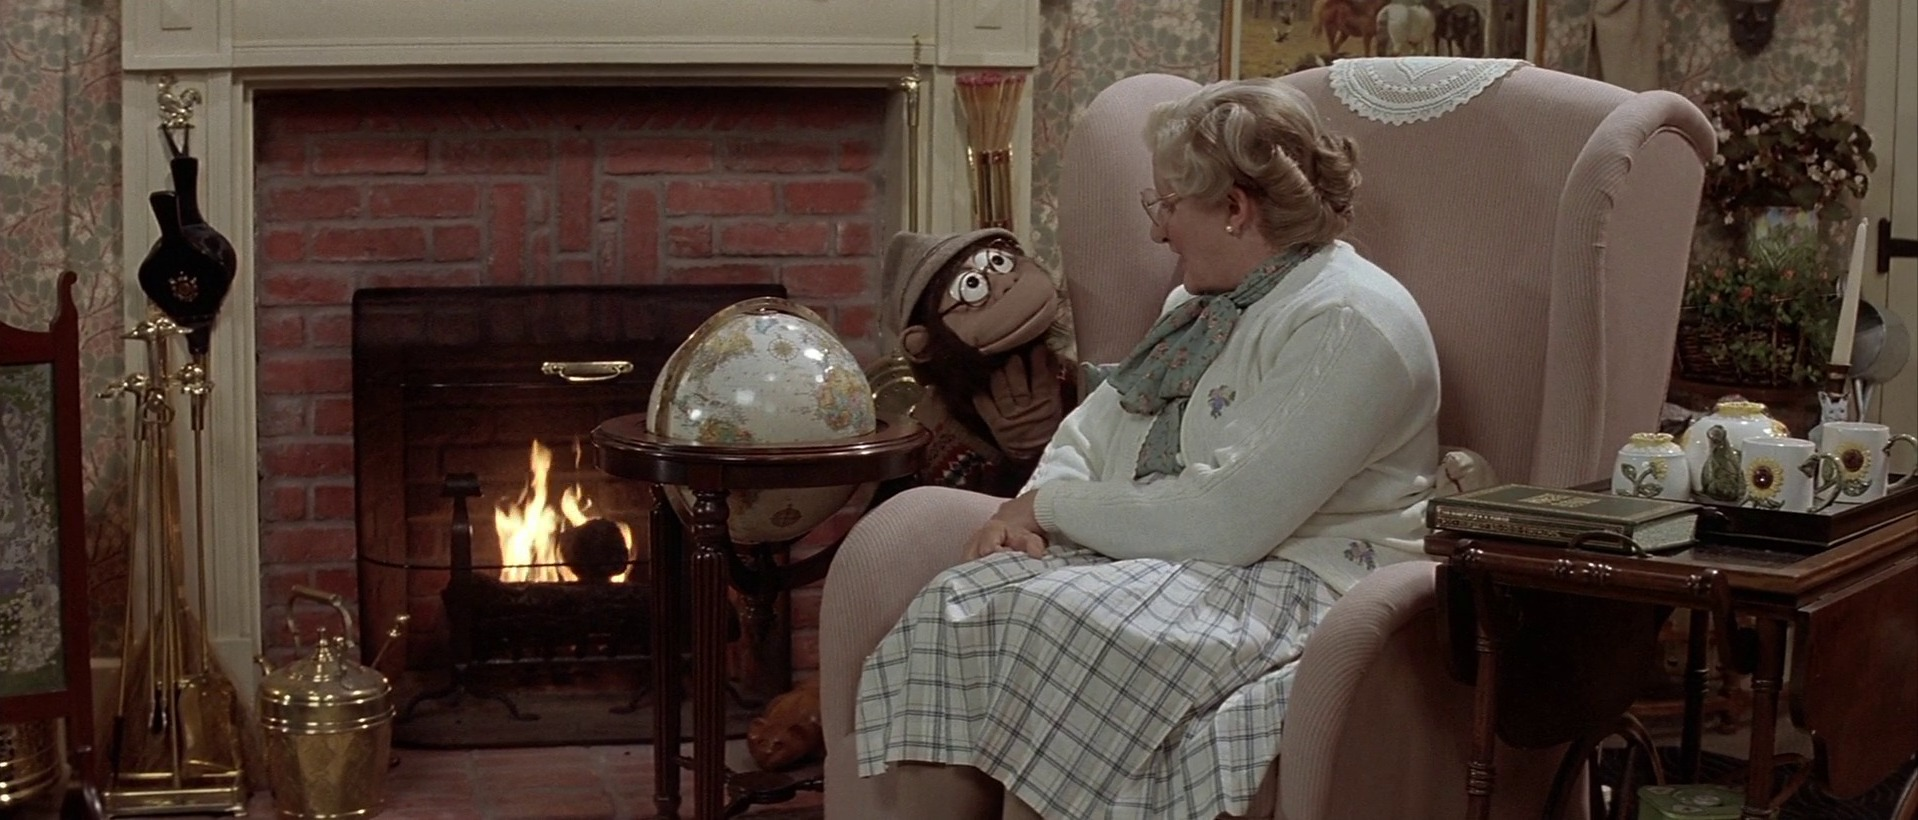 Robin Williams and William Newman in Mrs. Doubtfire (1993)